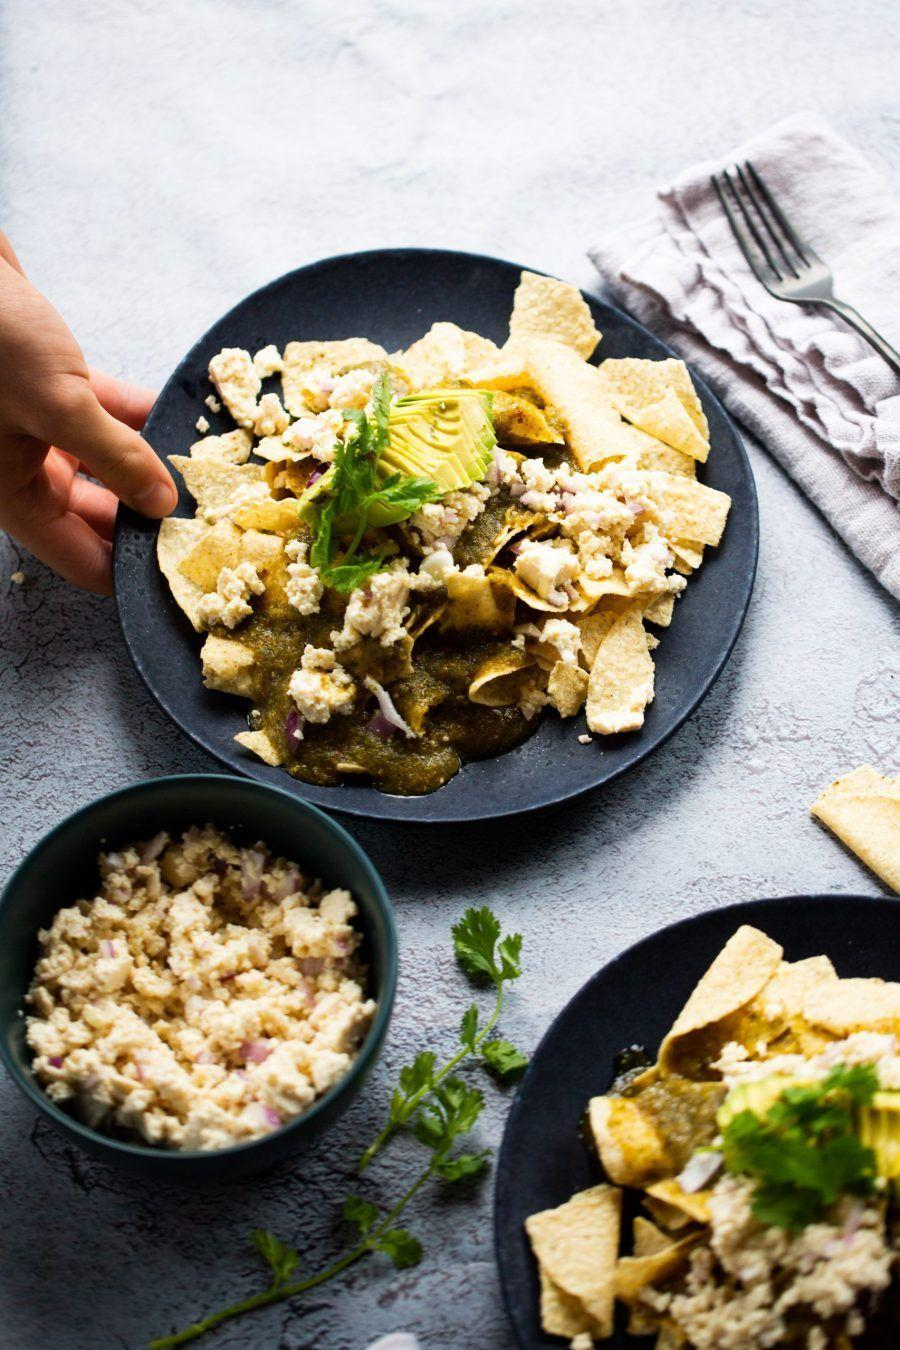 """<p>This comfort food staple made of crunchy corn tortillas cut into triangles comes in too many savory topping combinations to count. This version uses smoky chile chipotles in adobo sauce, roasted garlic, fresh cilantro, and tomatillos for an ideal vegan breakfast (or late-night snack).</p><p><a class=""""link rapid-noclick-resp"""" href=""""https://www.brownsugarandvanilla.com/chilaquiles-with-chipotle-tomatillo-sauce/"""" rel=""""nofollow noopener"""" target=""""_blank"""" data-ylk=""""slk:GET THE RECIPE"""">GET THE RECIPE</a></p><p><em>Per serving: 987 calories, 37 g fat (6 g saturated), 1,332 mg sodium, 19 g carbs, 19 g sugar, 8 g fiber, 113 g protein</em></p>"""